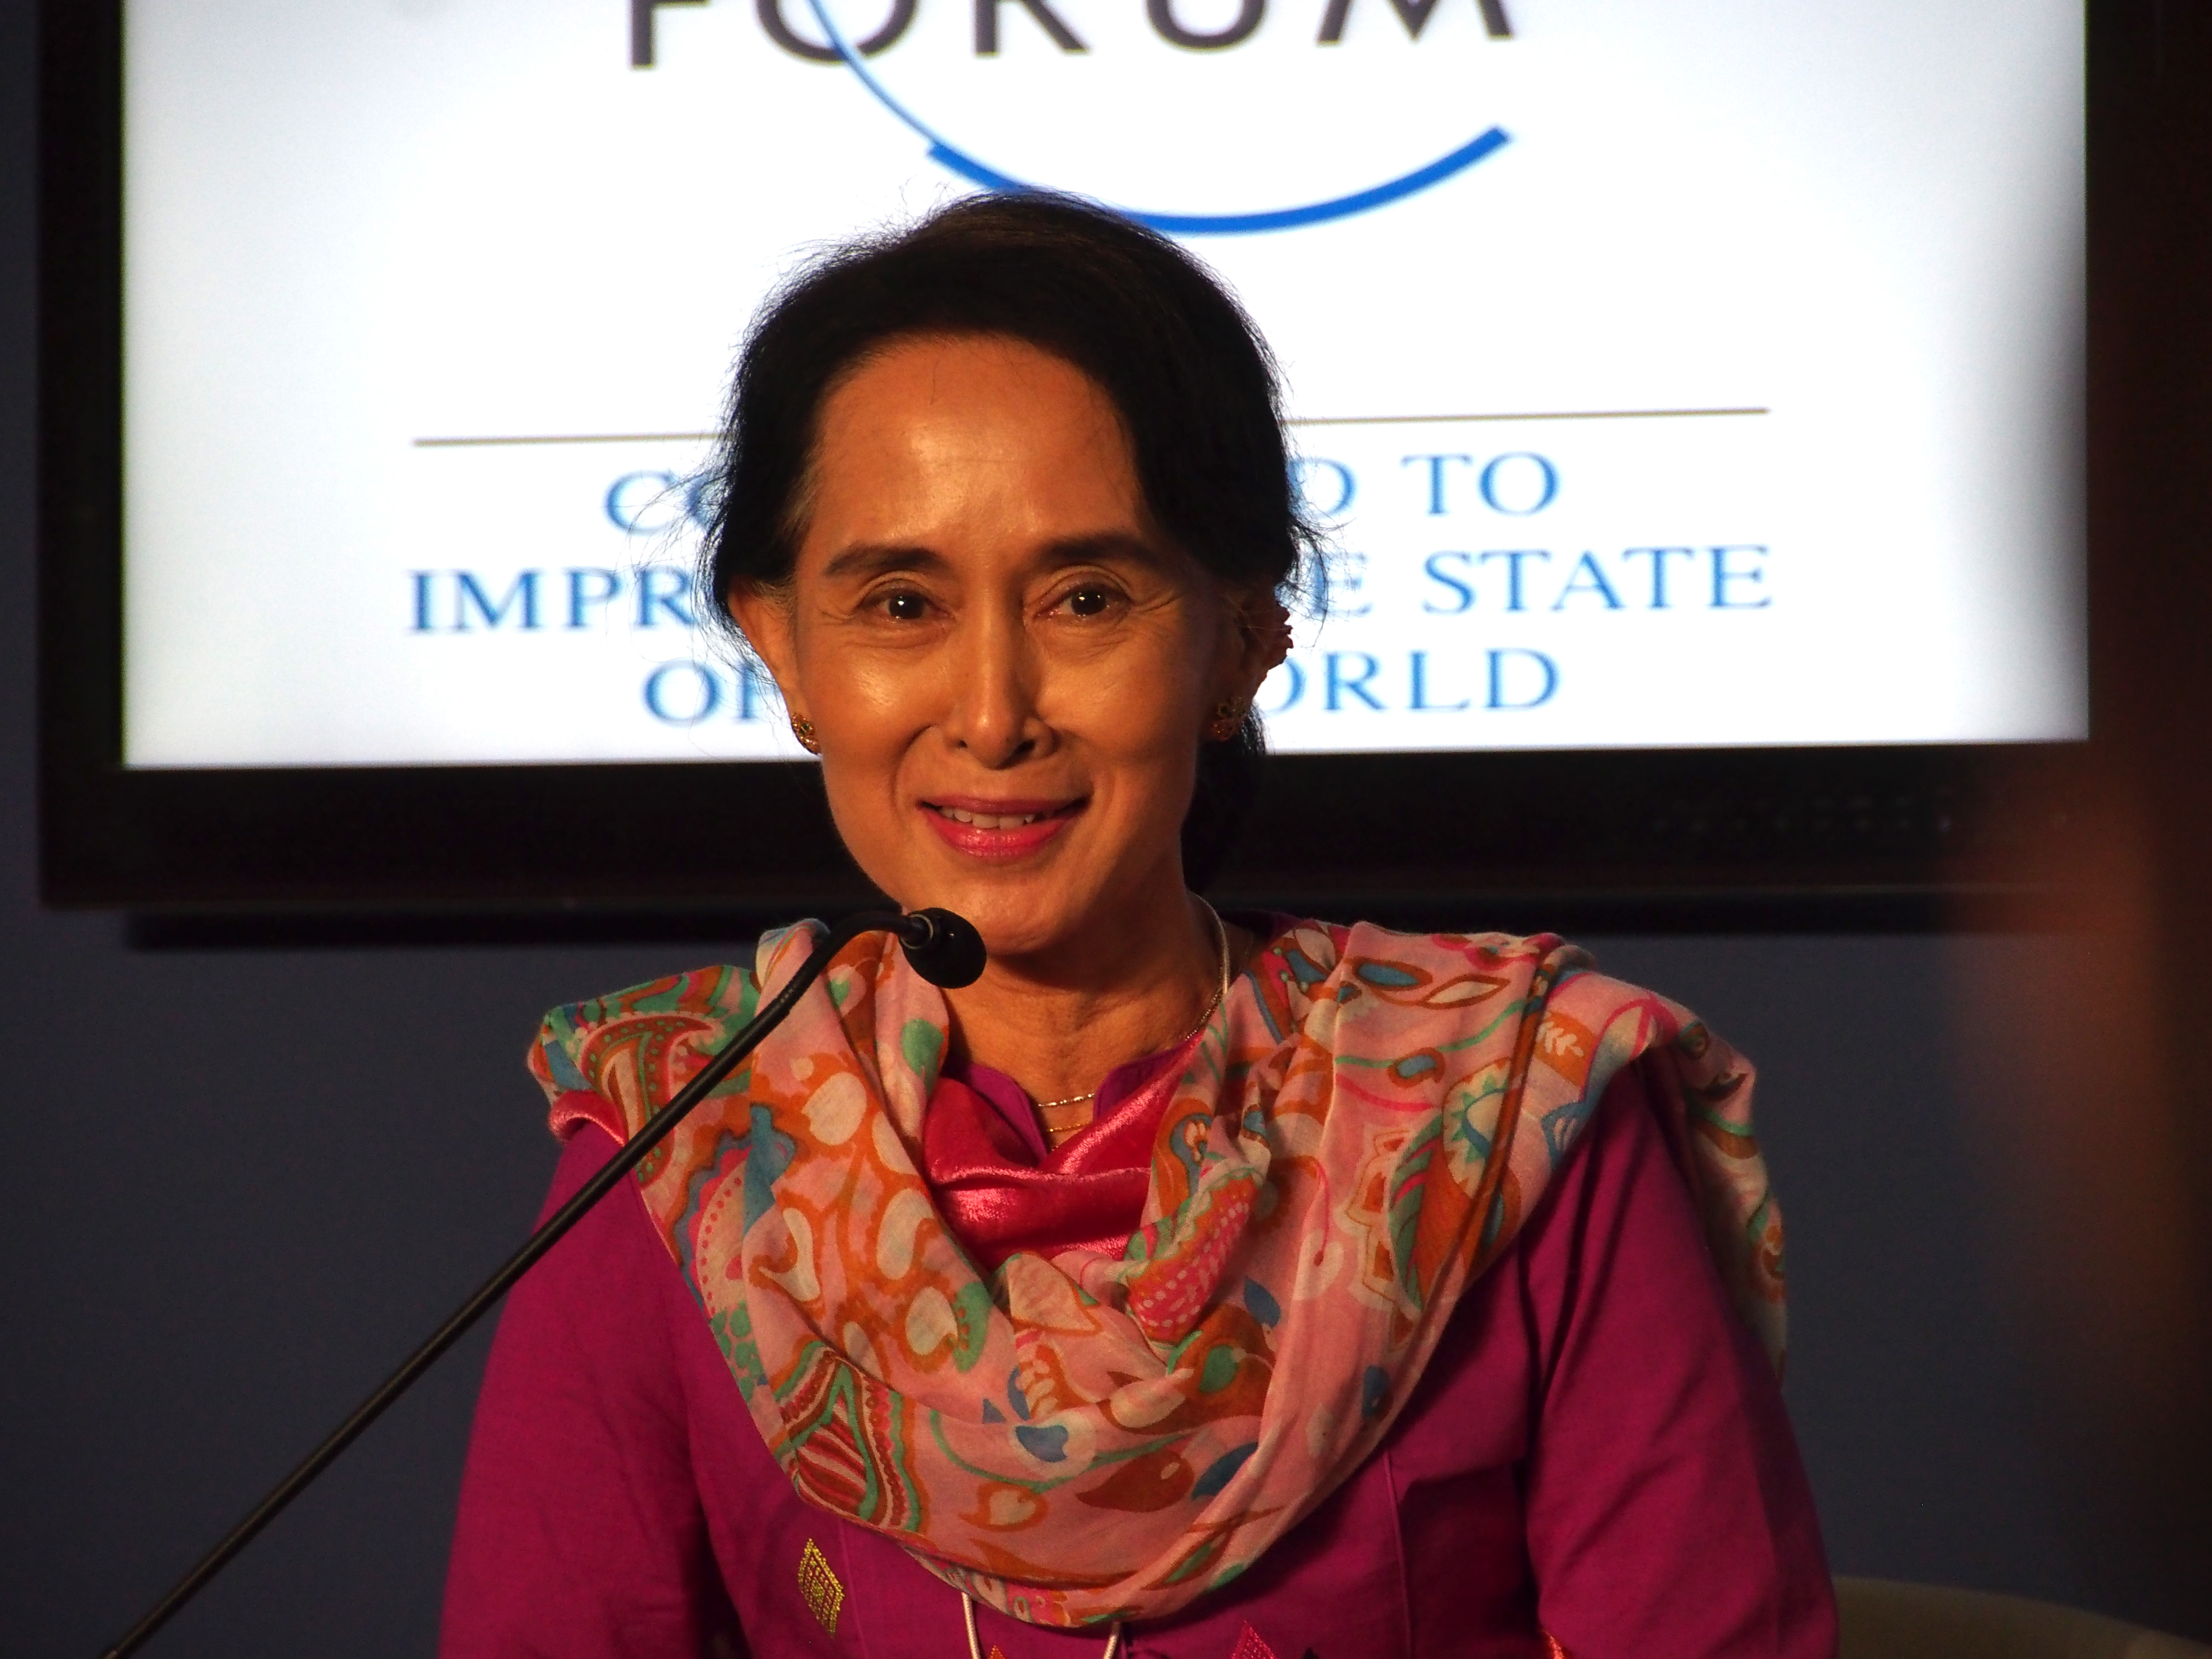 Aung San Suu Kyi: An extraordinary life story told in her own words recommendations